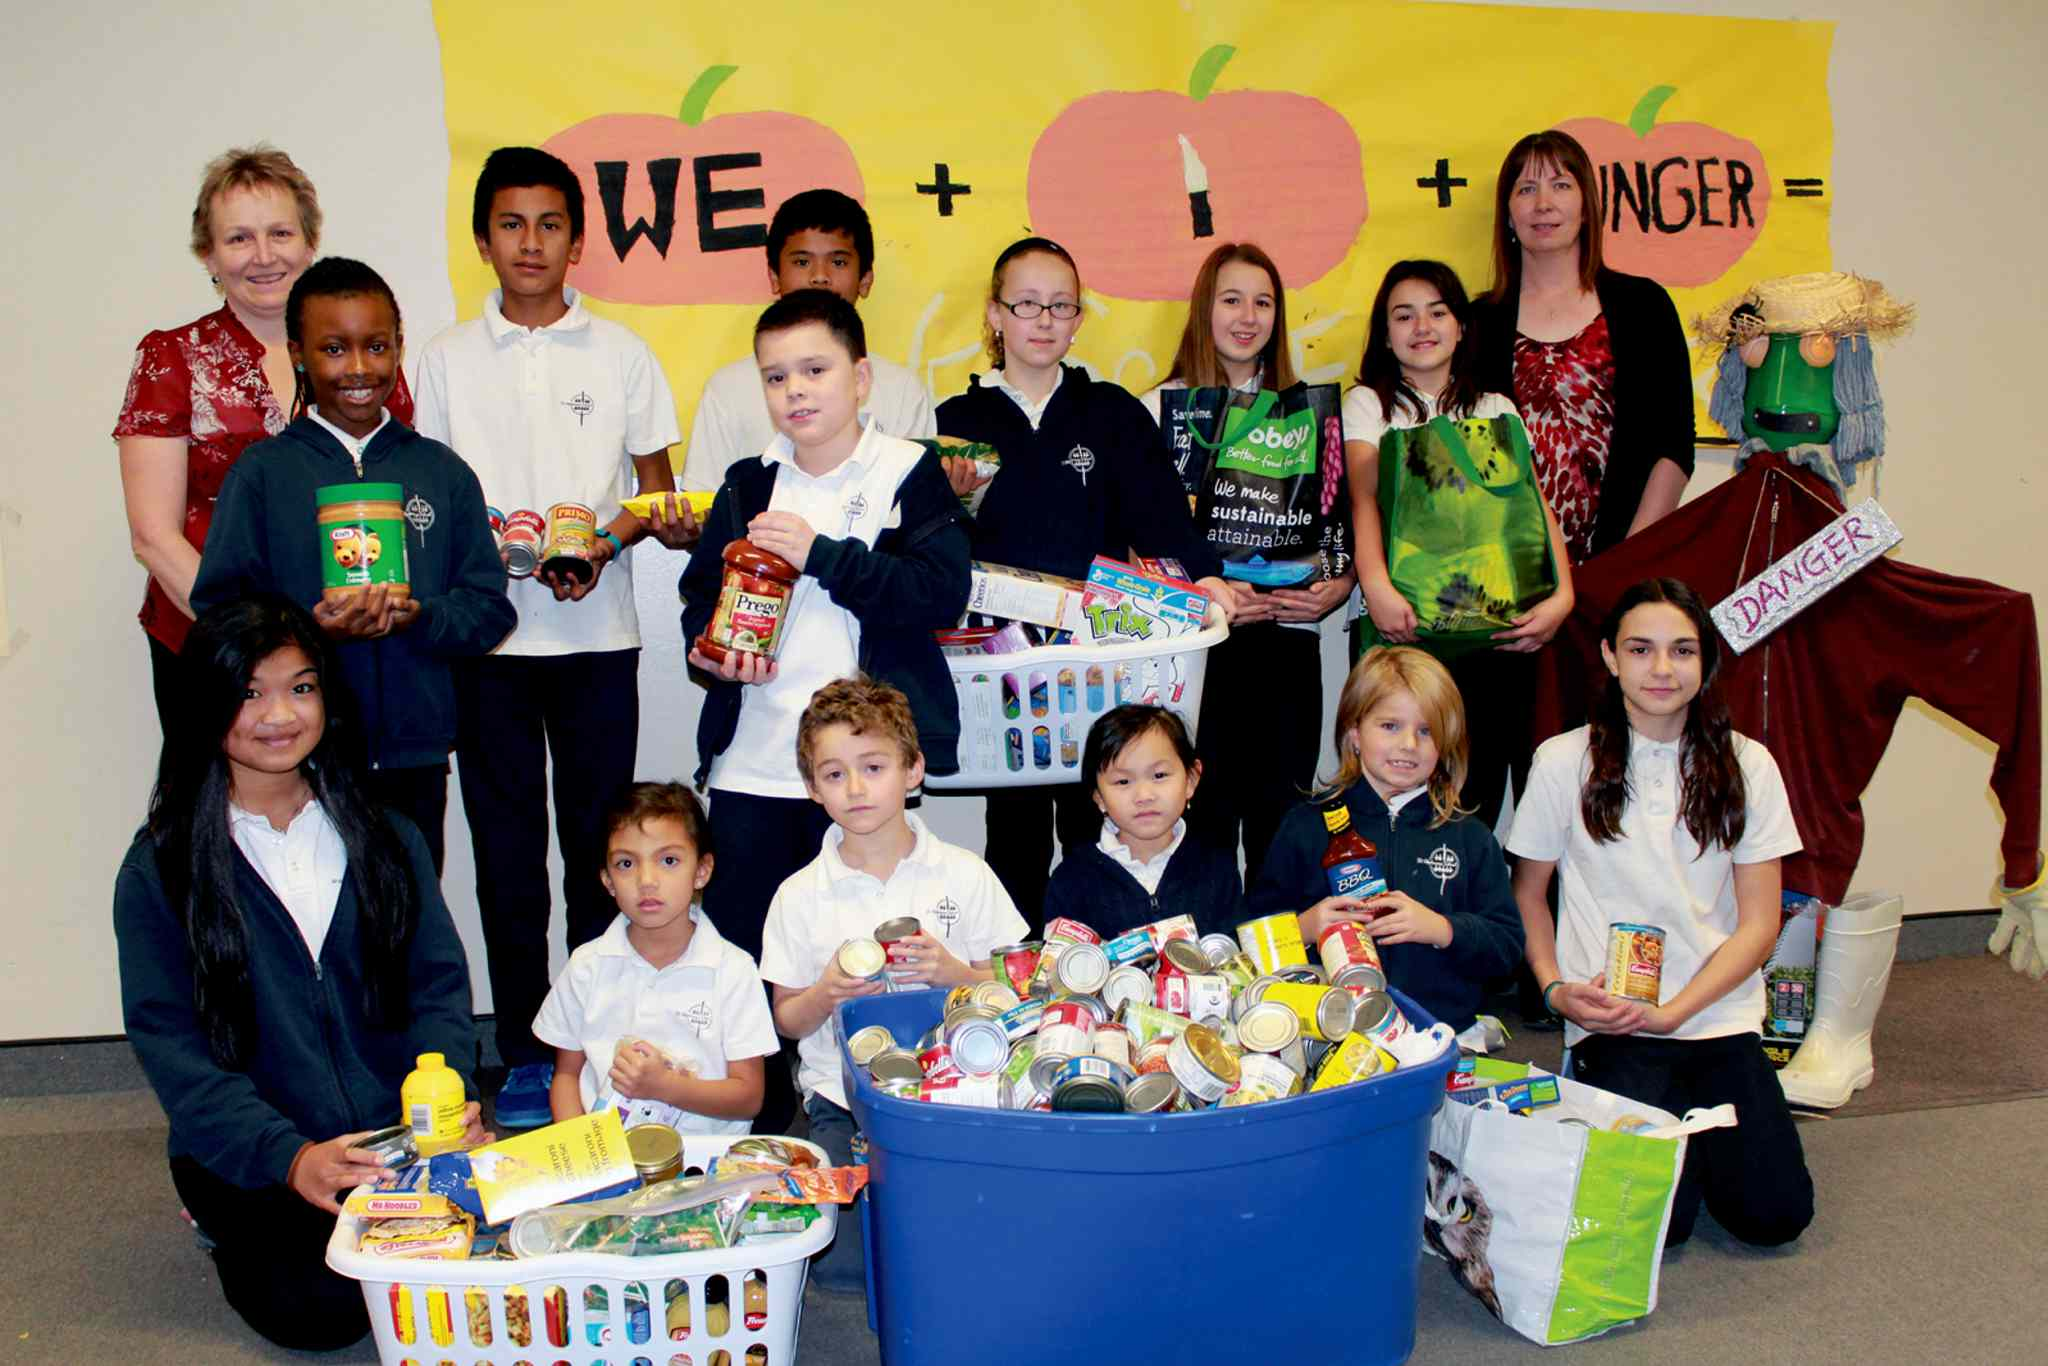 St. Alphonsus School principal Christine McInnis (back left) and secretary Patti Resendes (back right) with a handful of students who helped compile a shipment of non-perishable food for the K-8 school's We Scare Hunger campaign.